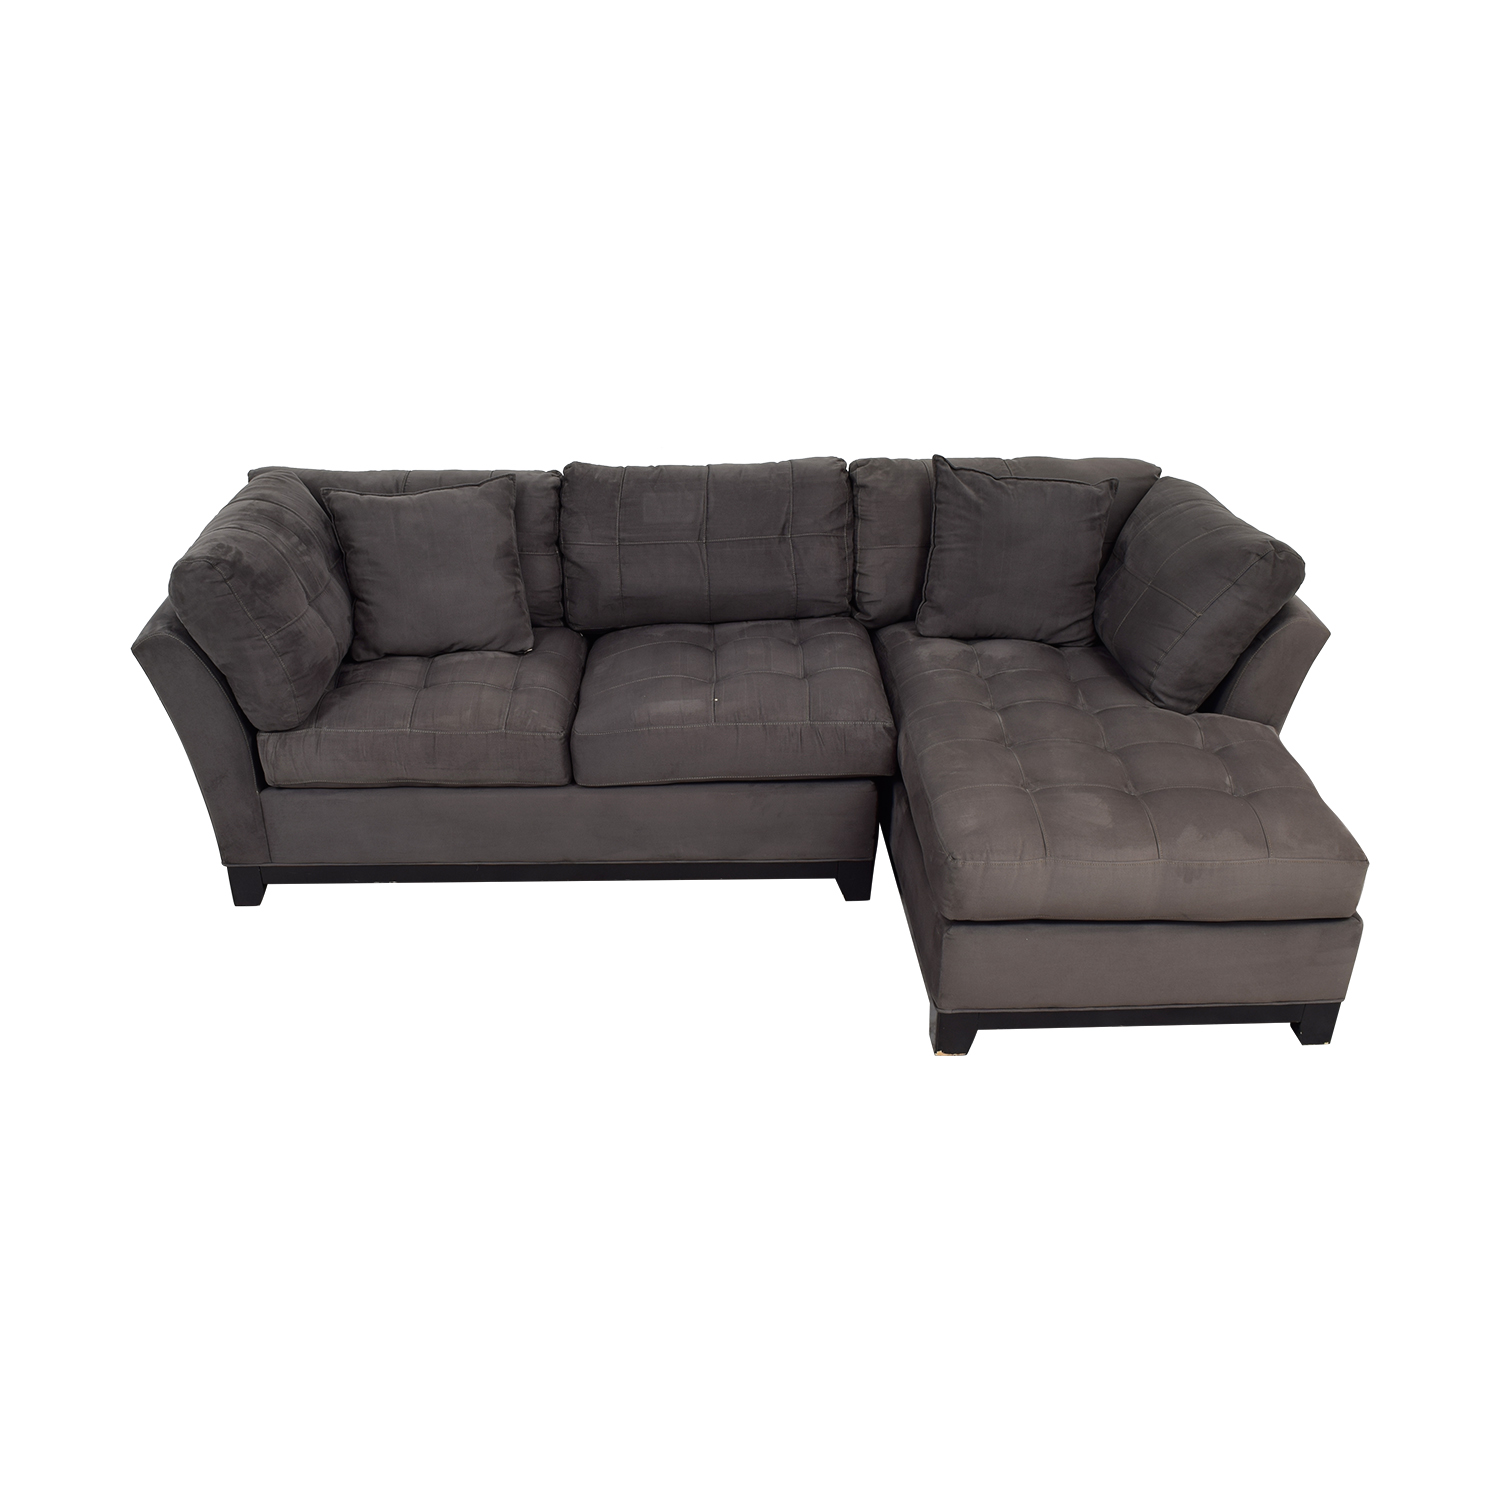 buy Raymour & Flanigan Cindy Crawford Grey Semi Tufted Sectional Raymour & Flanigan